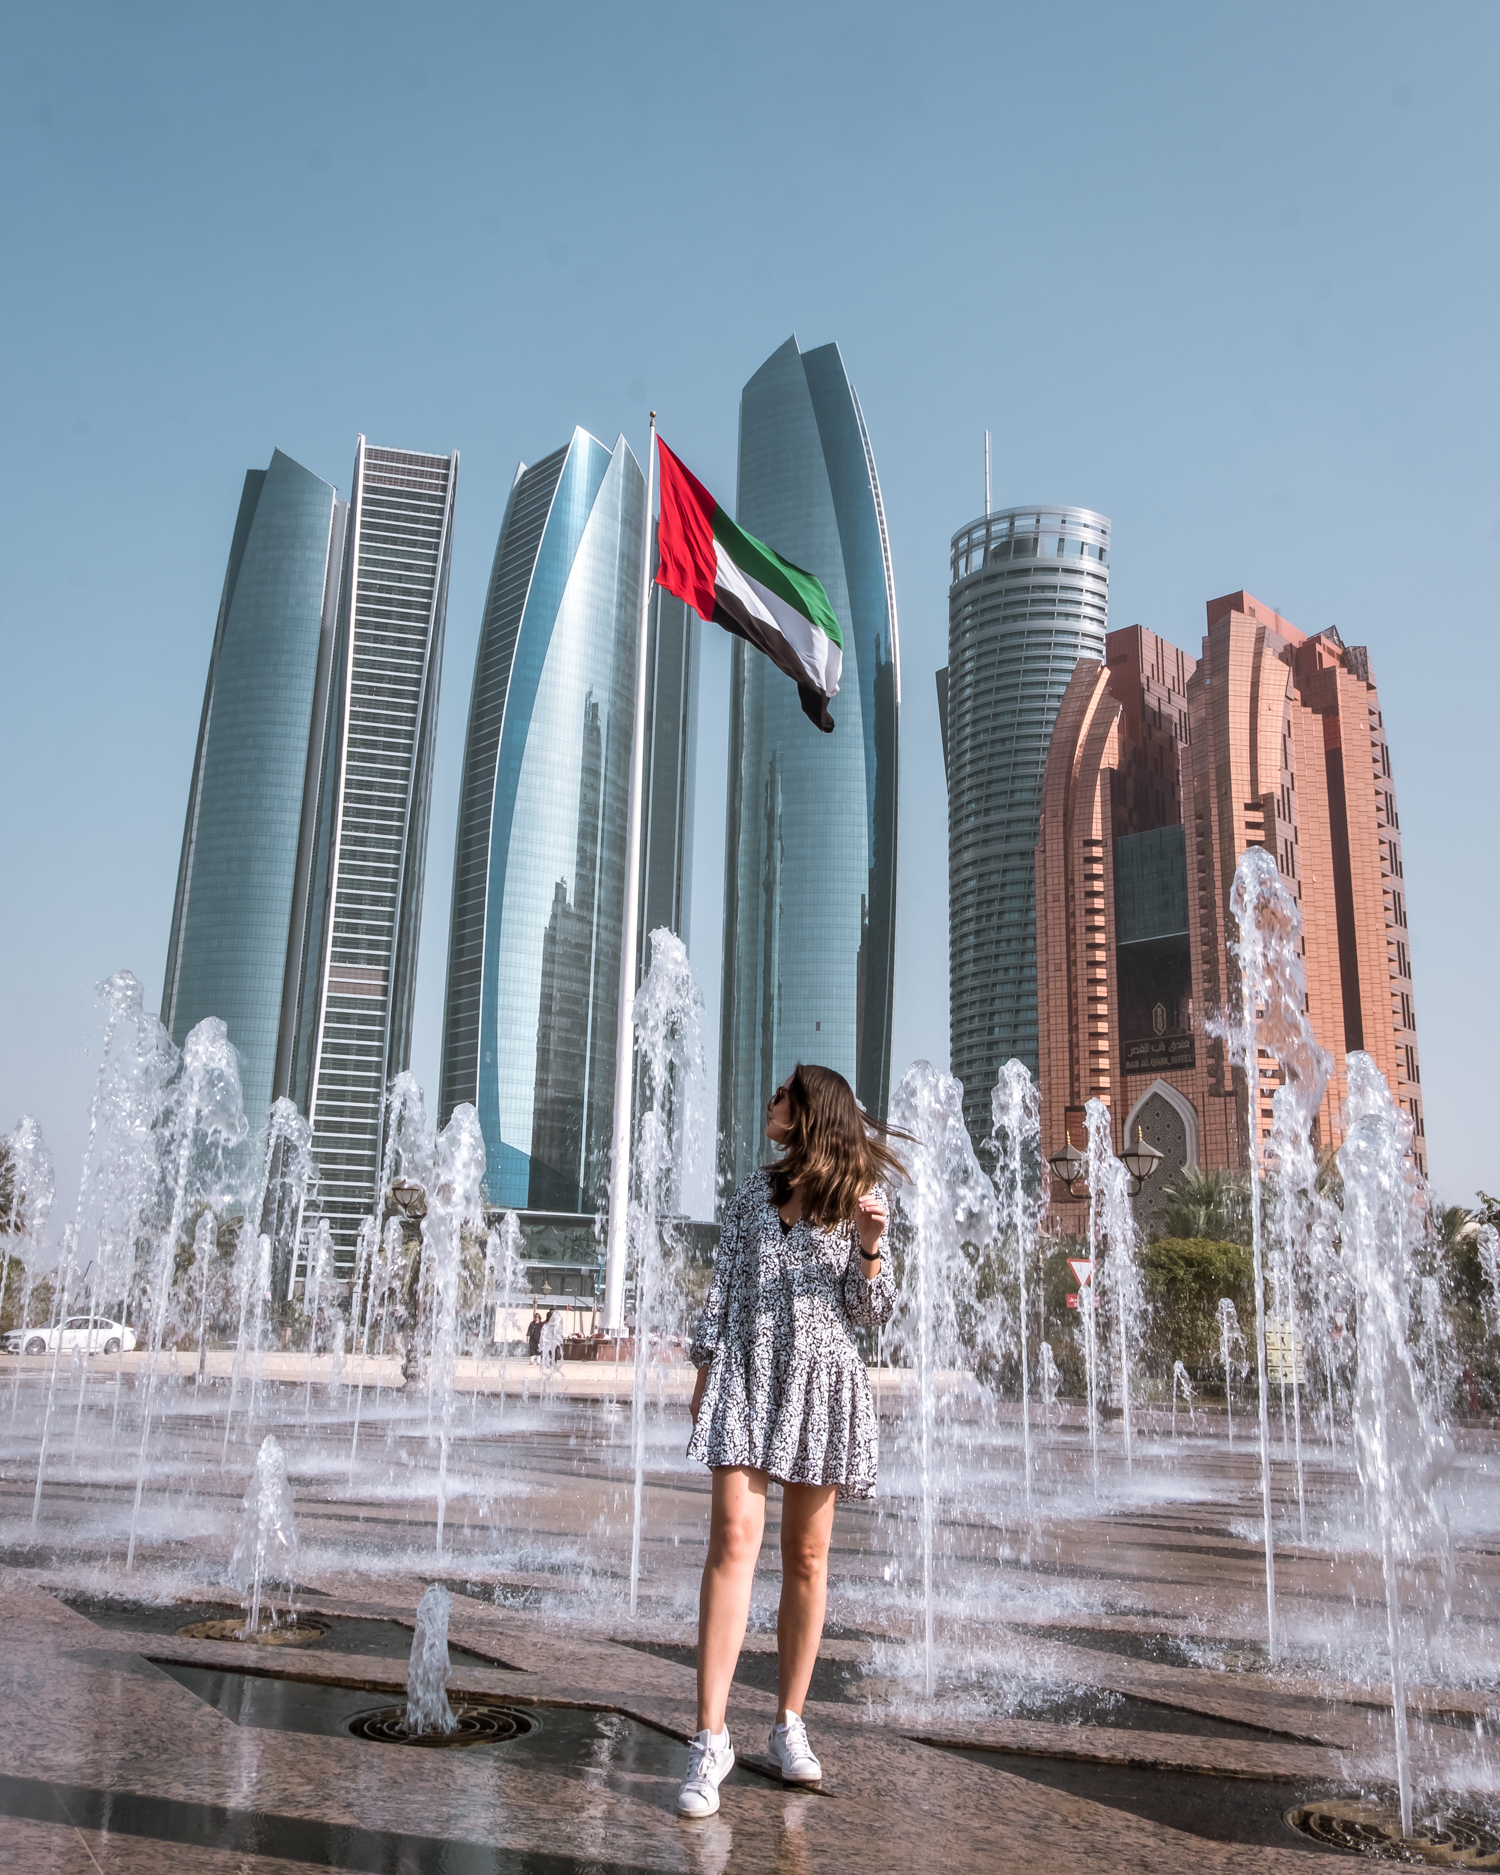 Abu Dhabi tourism Etihad Towers